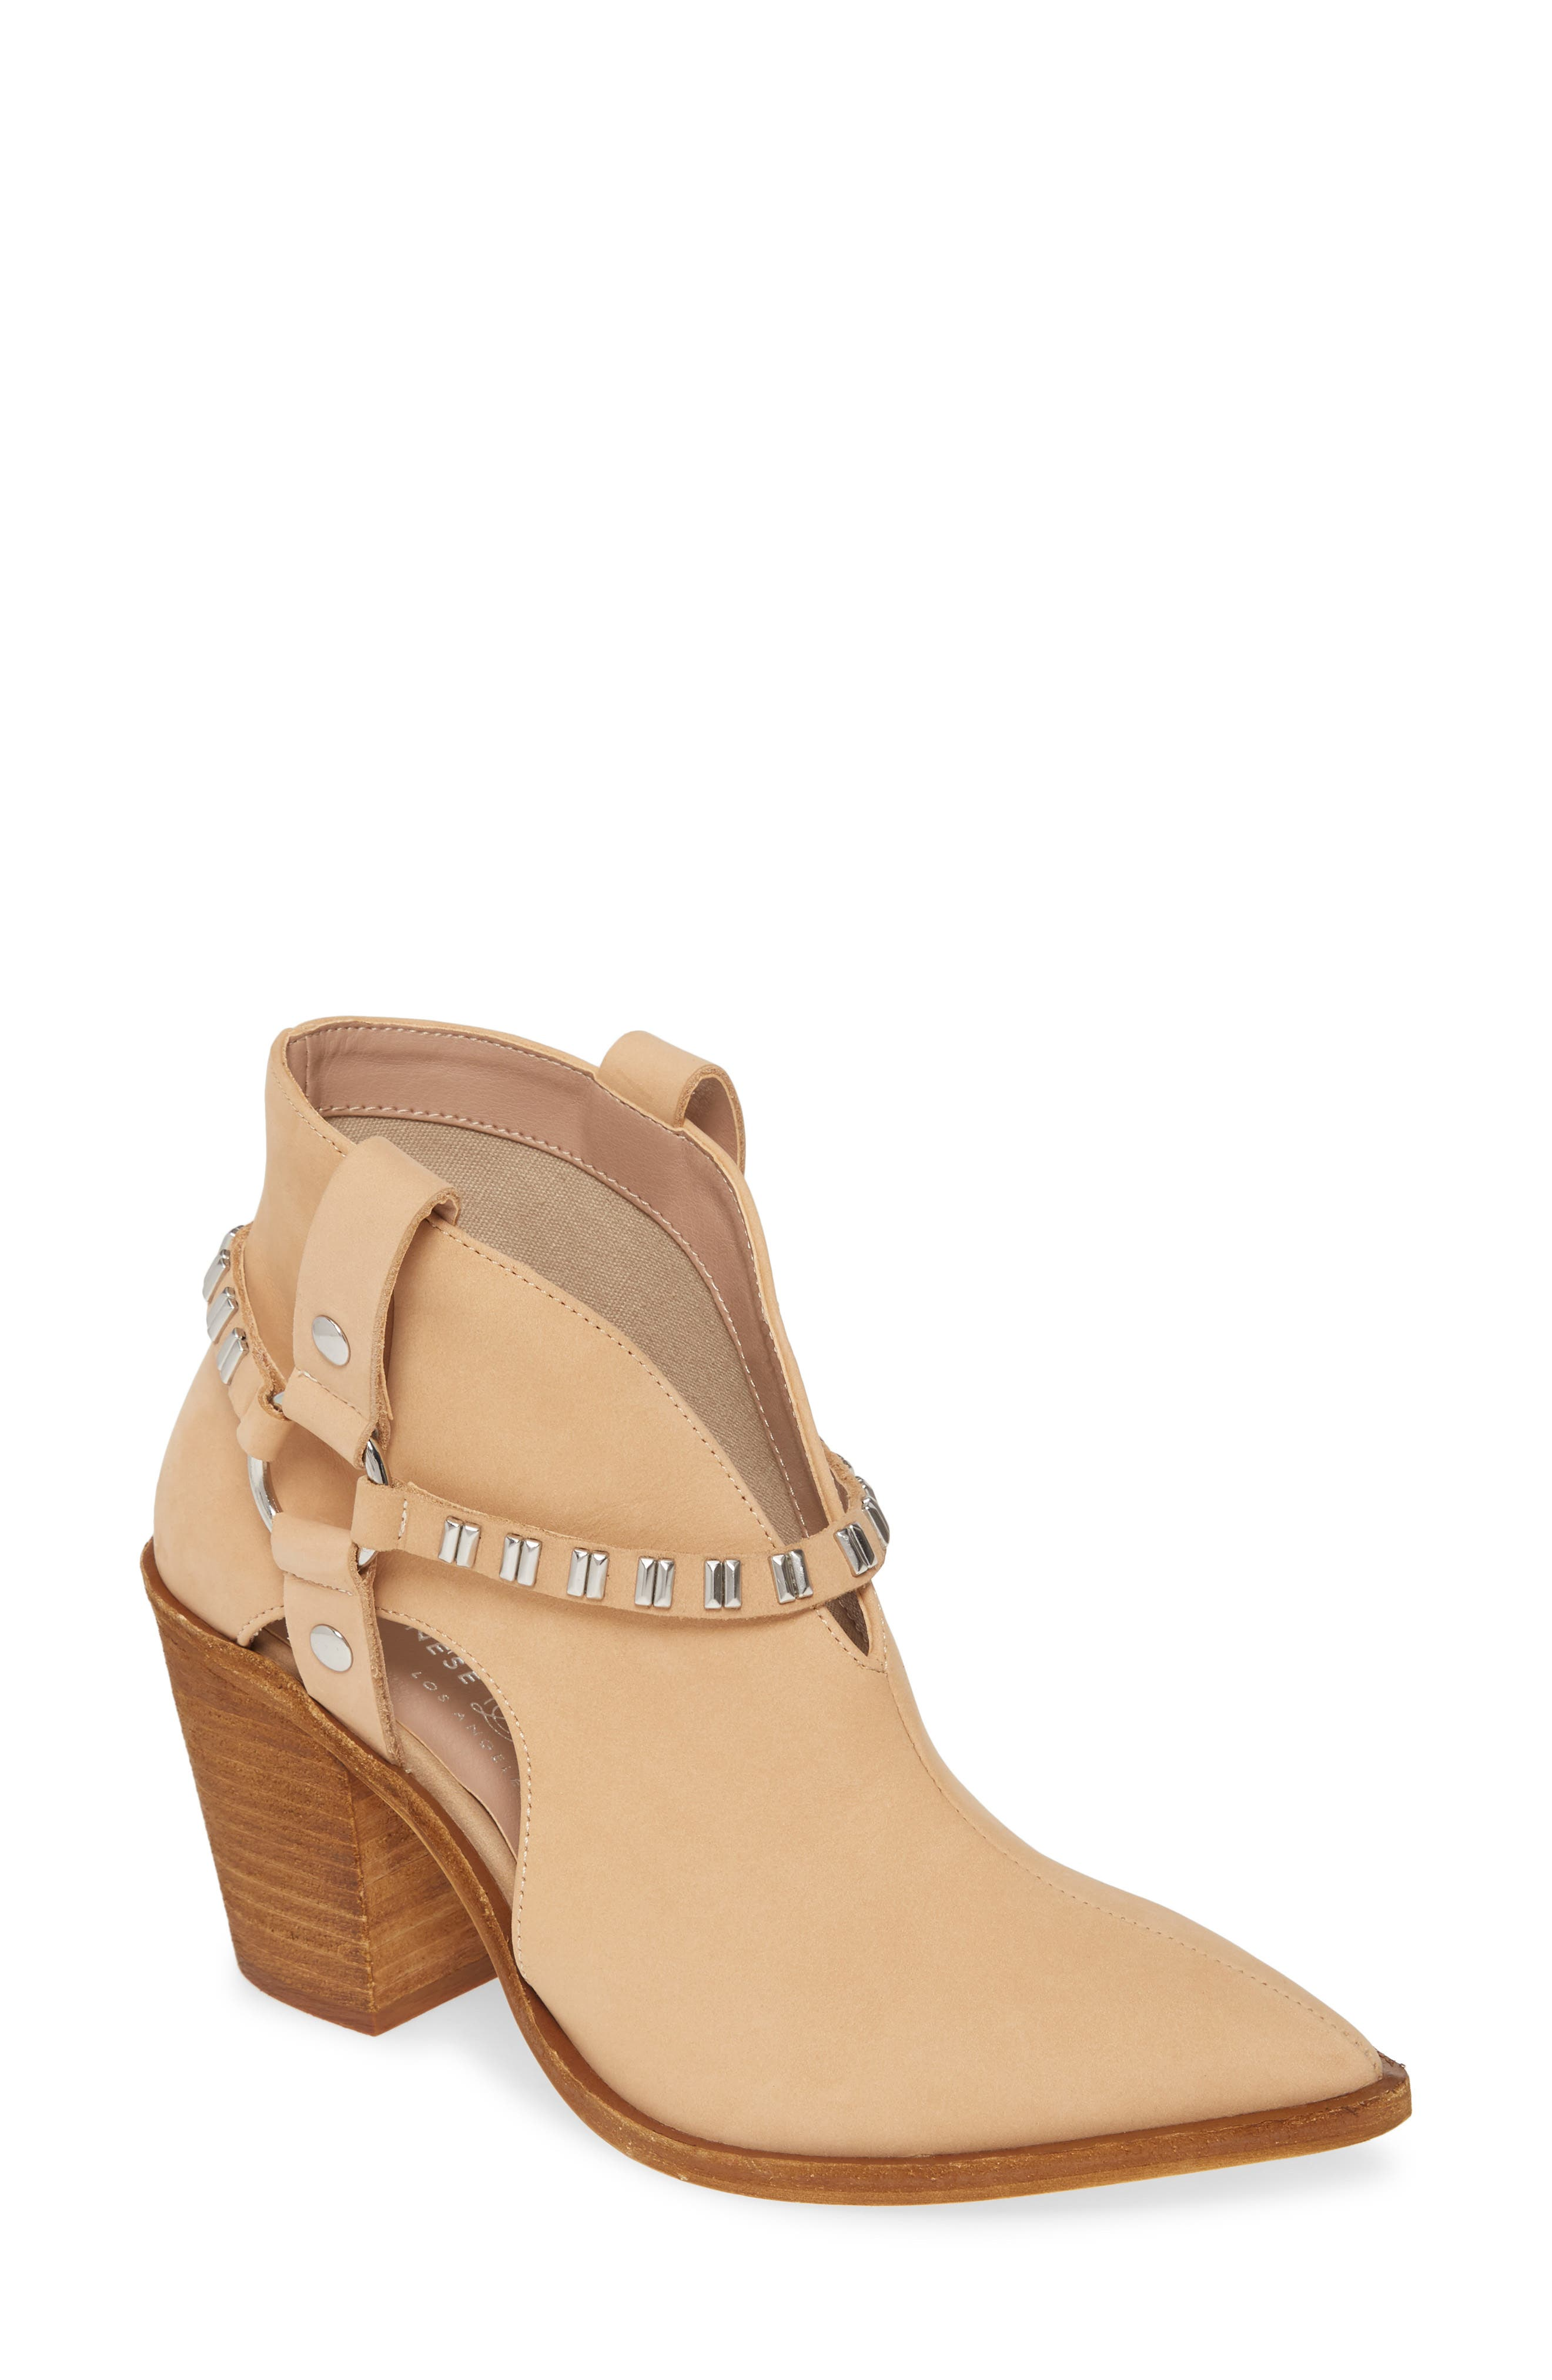 Chinese Laundry Tabby Studded Western Bootie- Beige